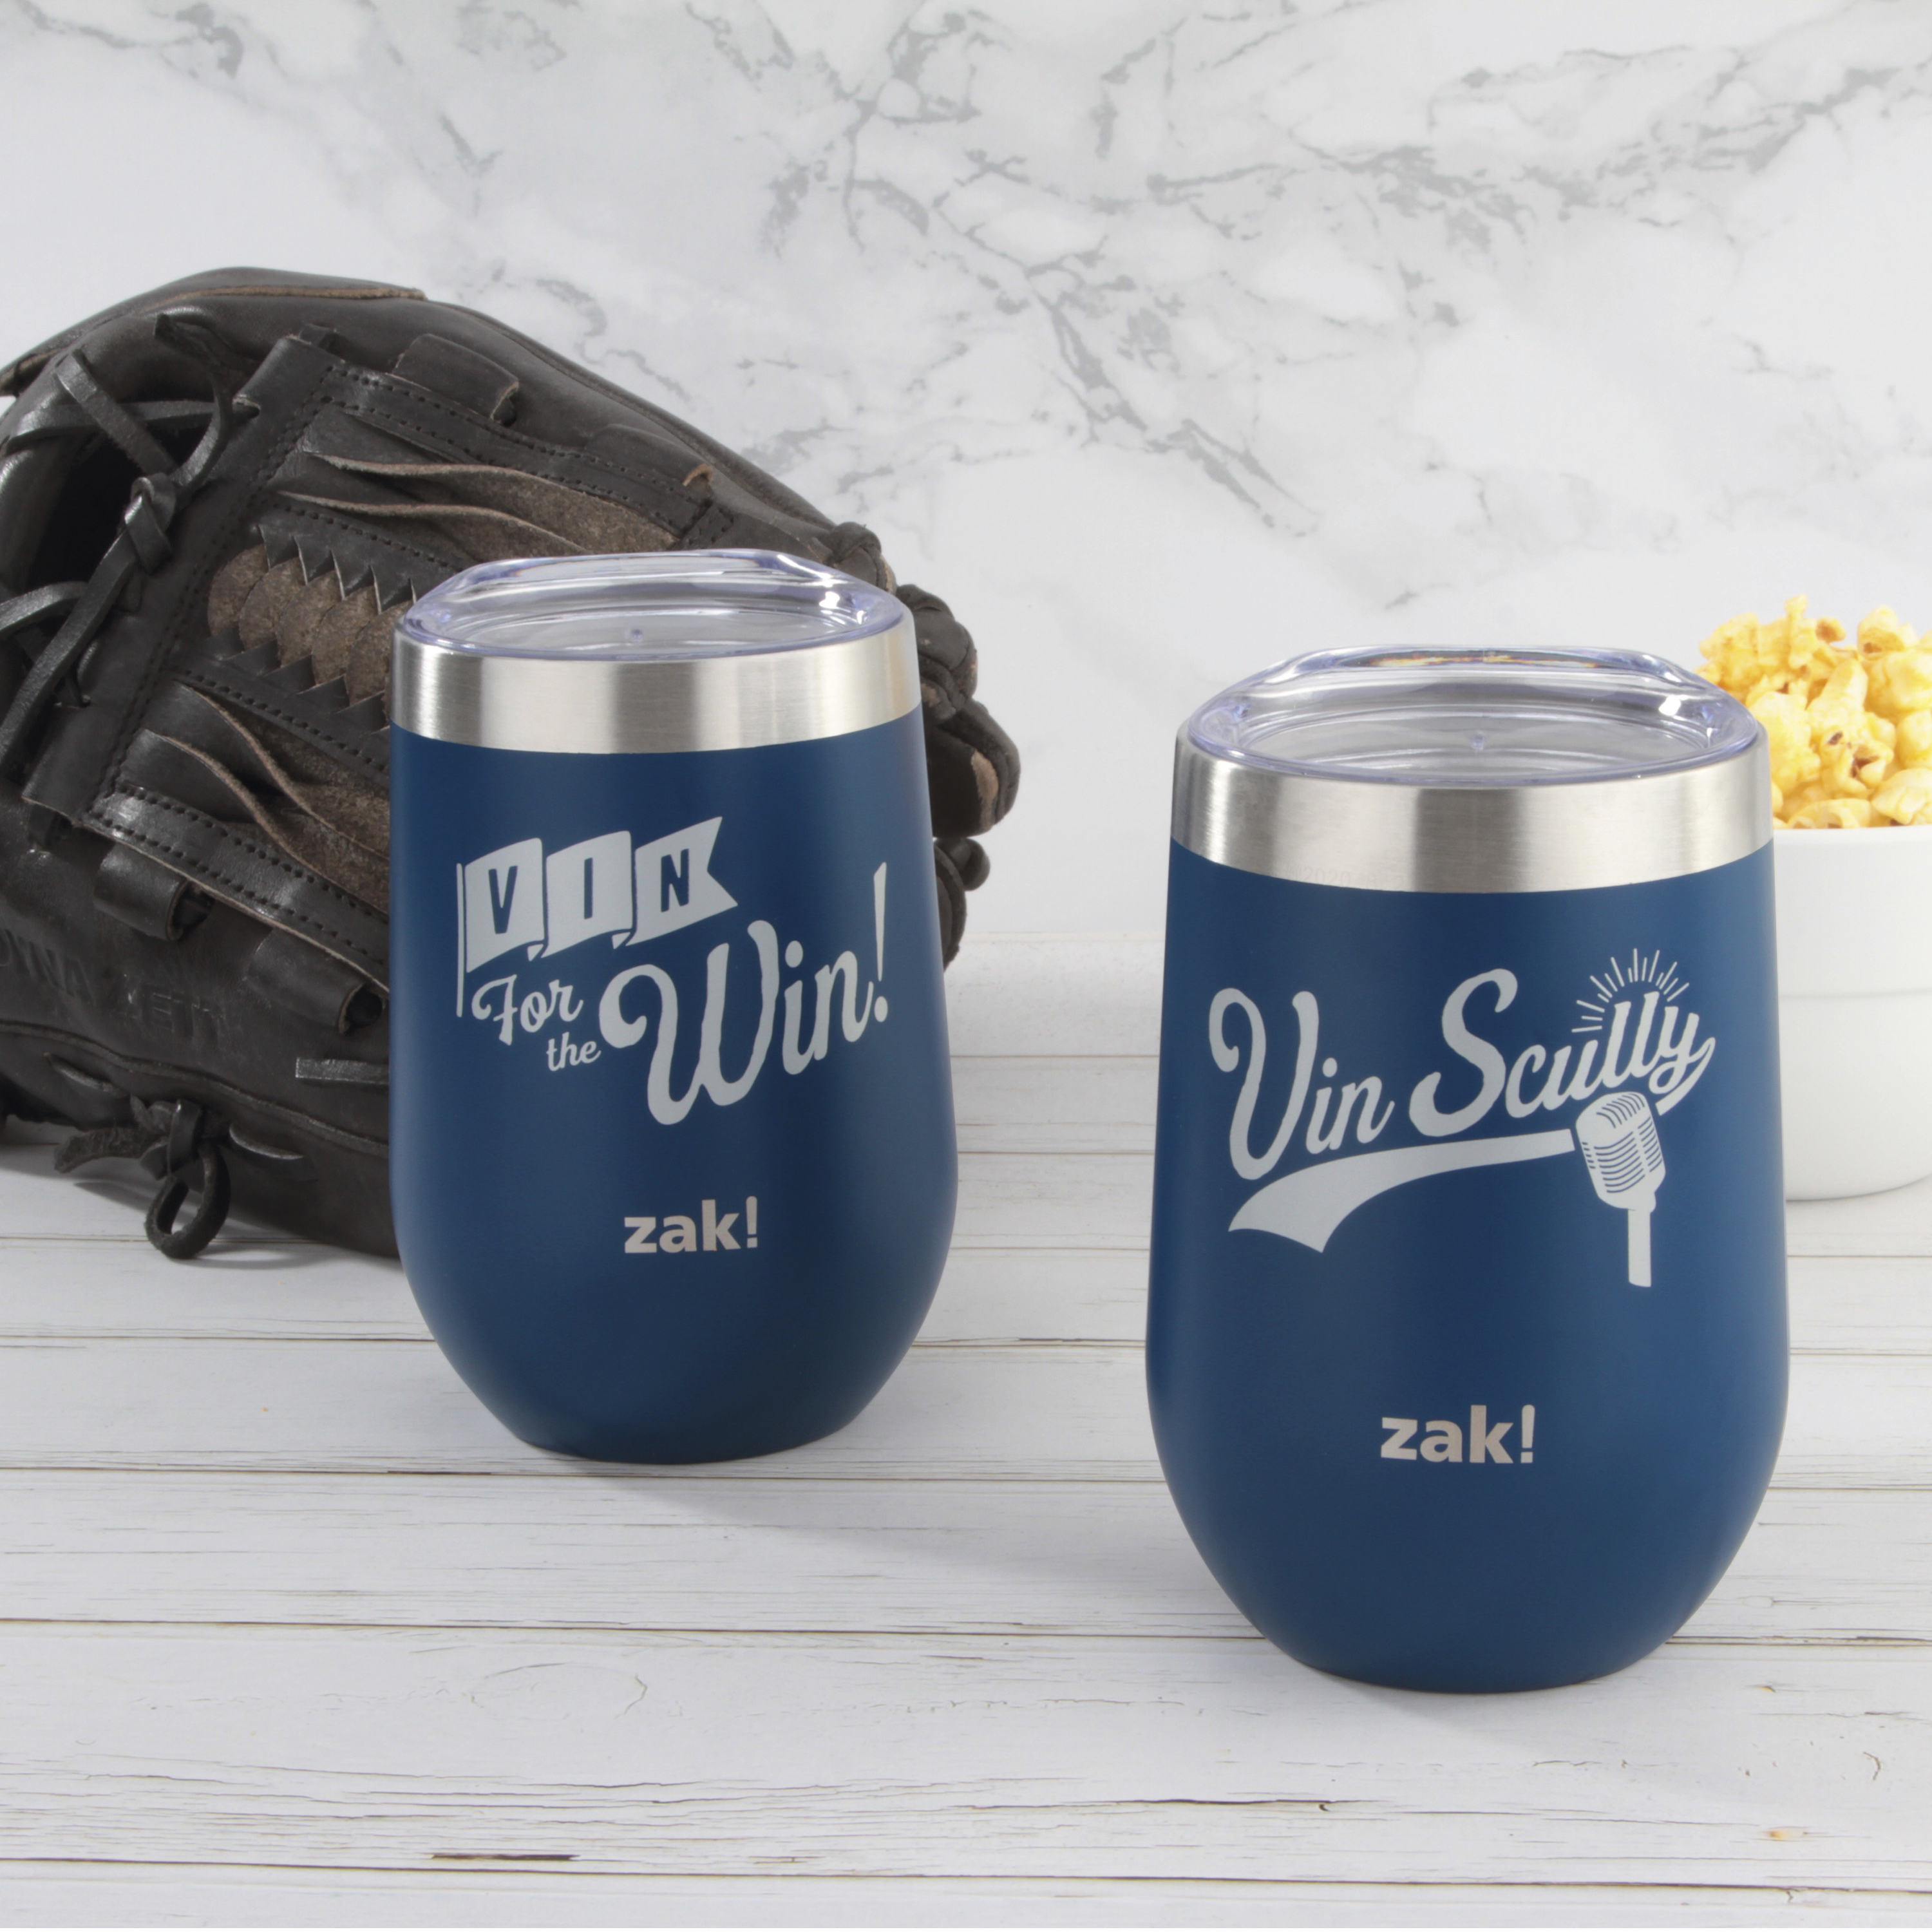 Zak Hydration 11.5 ounce Insulated Stainless Steel Tumbler, Vin Scully, 2-piece set slideshow image 3